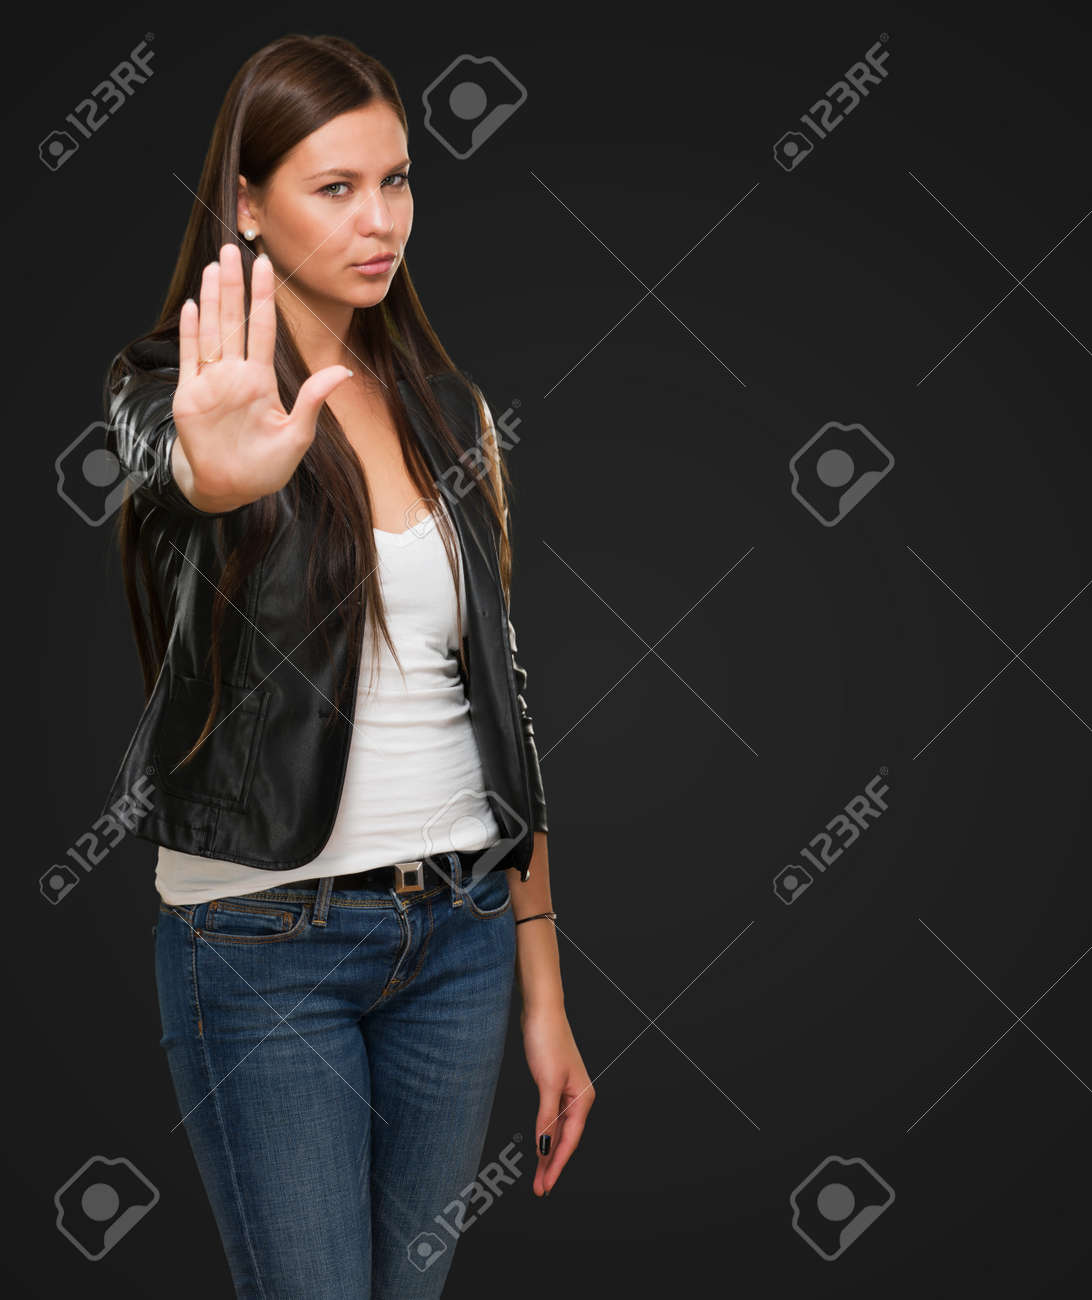 Young Woman Showing Stop Hand Gesture against a black background Stock Photo - 16672525